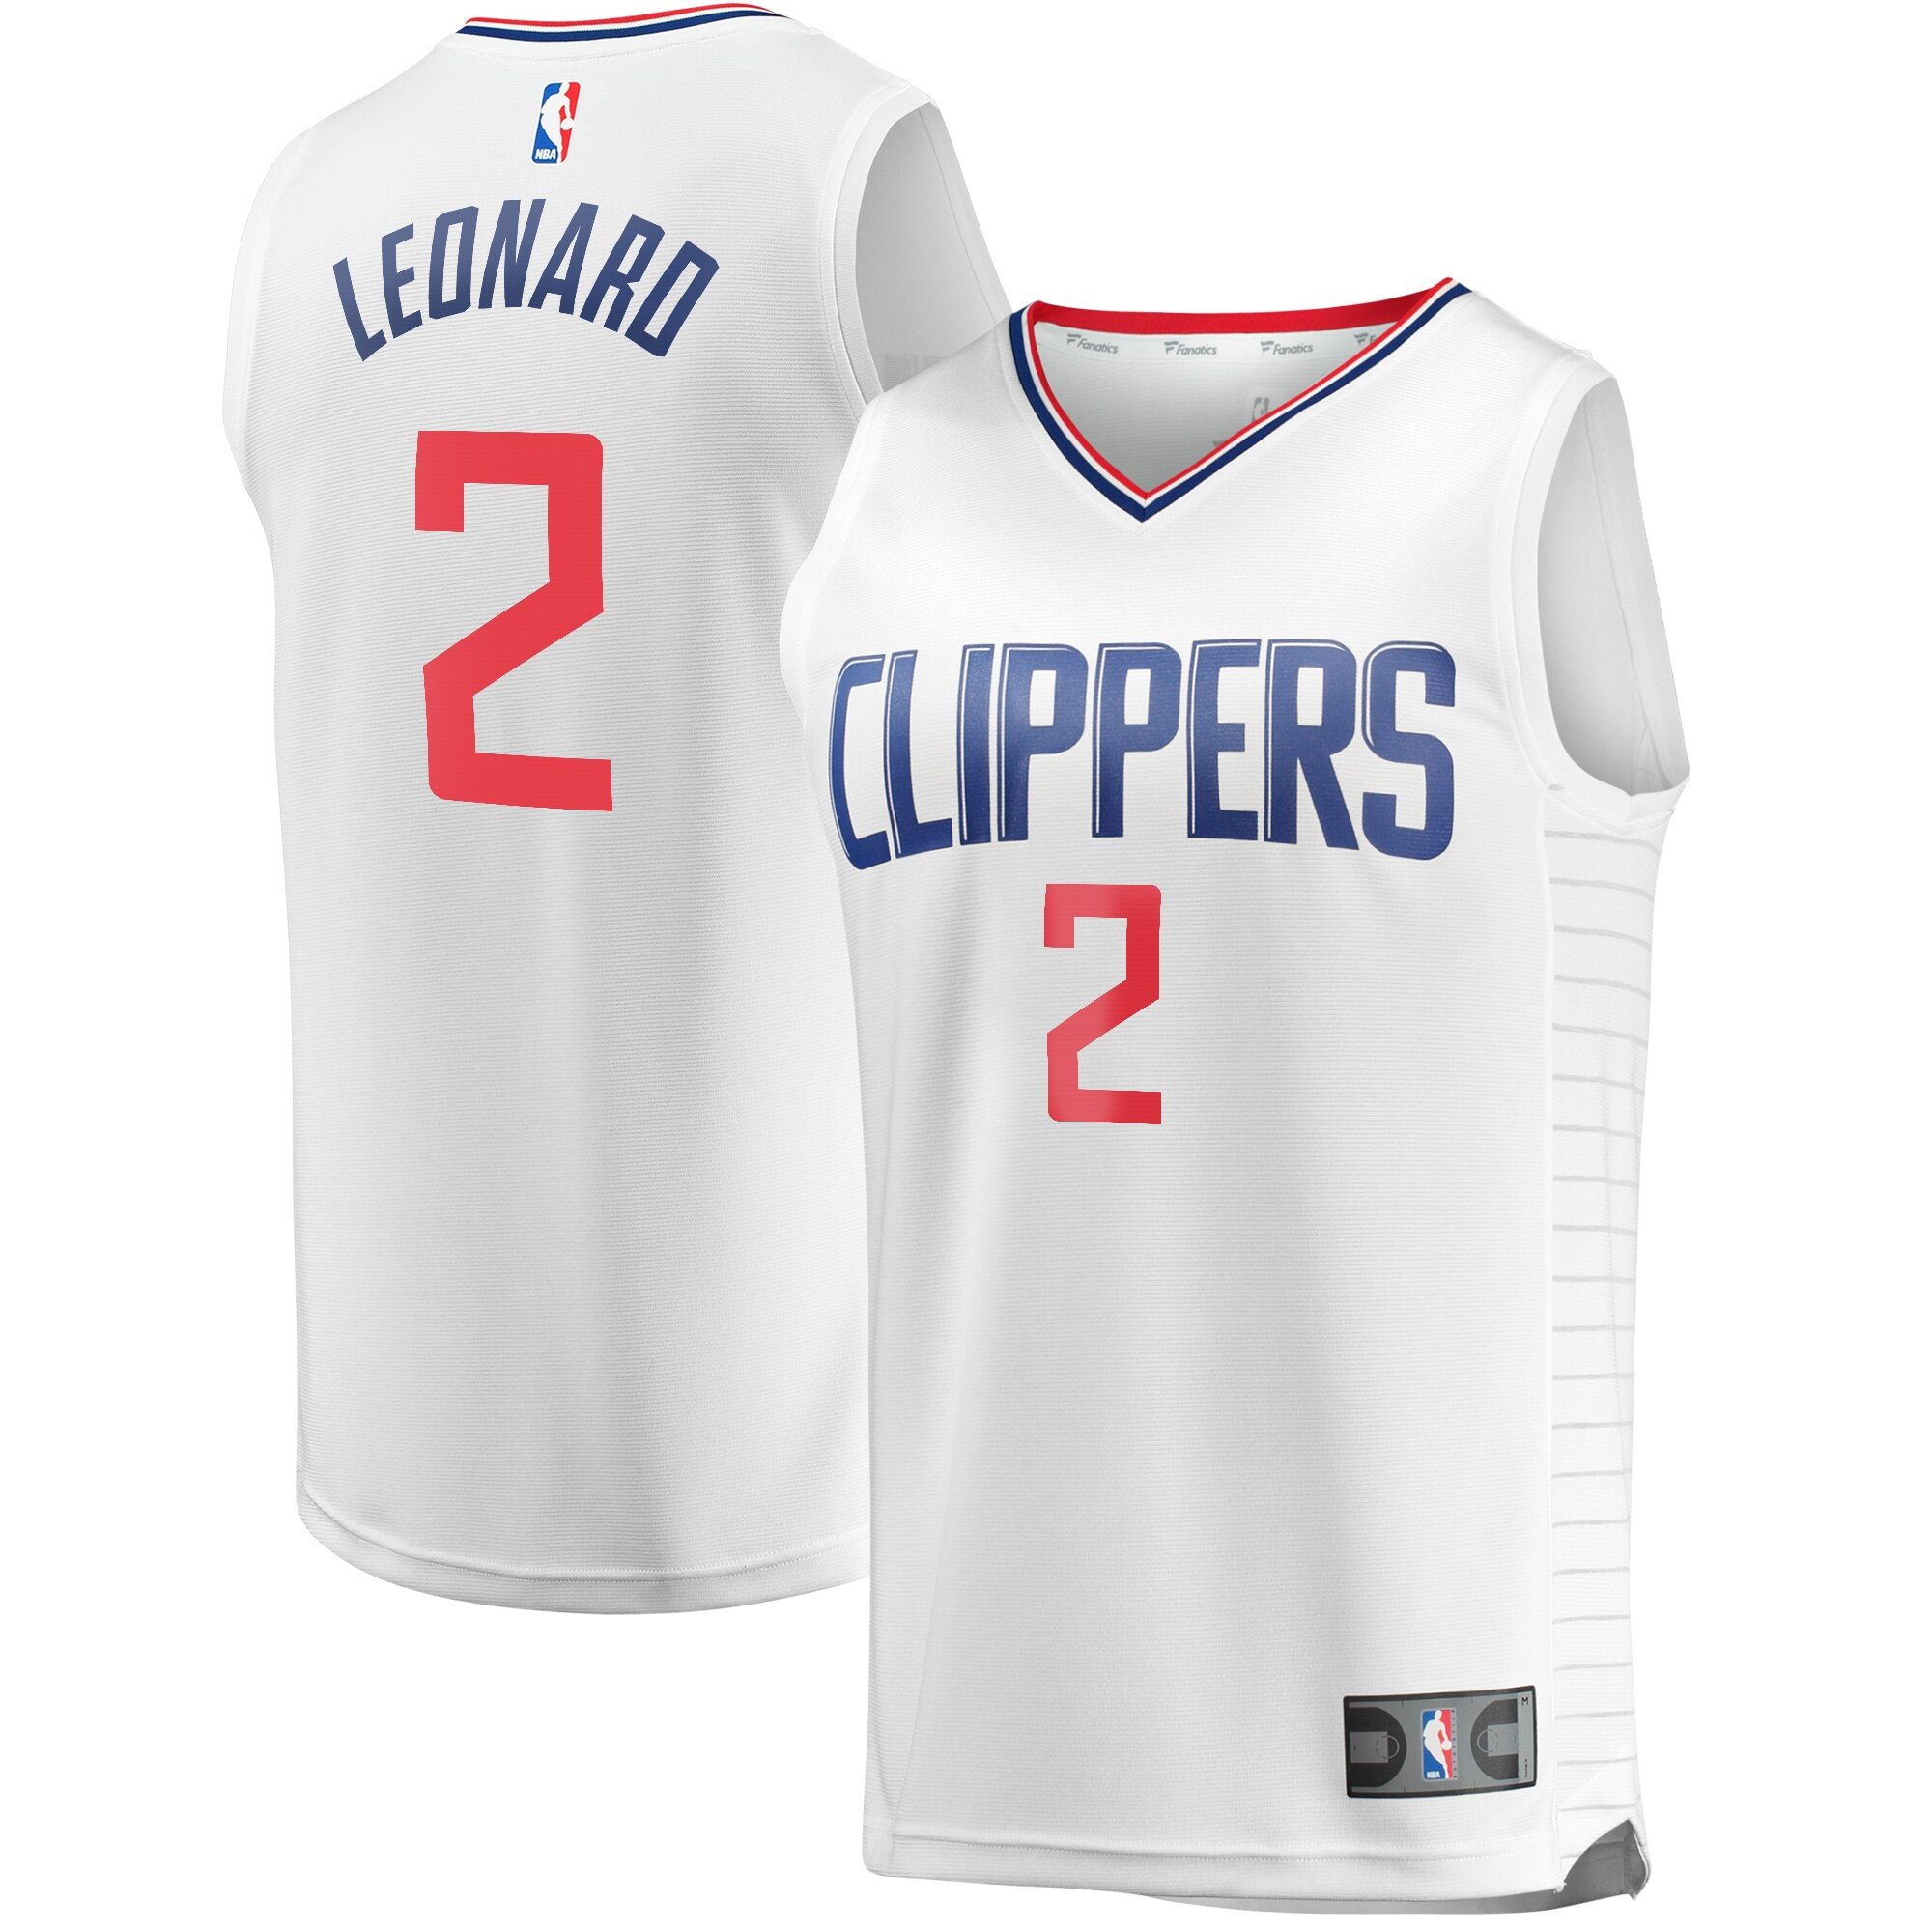 Kawhi Leonard LA Clippers Fanatics Branded Youth Fast Break Replica Jersey White - Association Edition